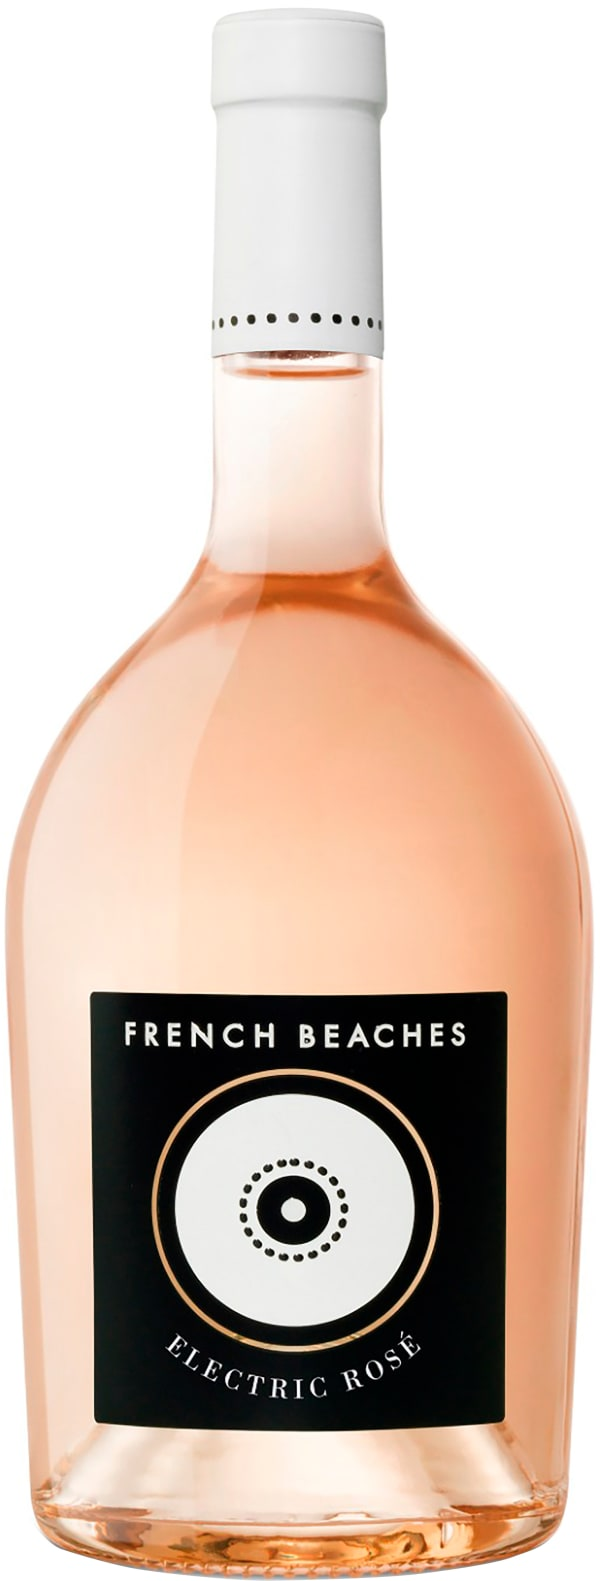 French Beaches Ultimate Rosé 2020